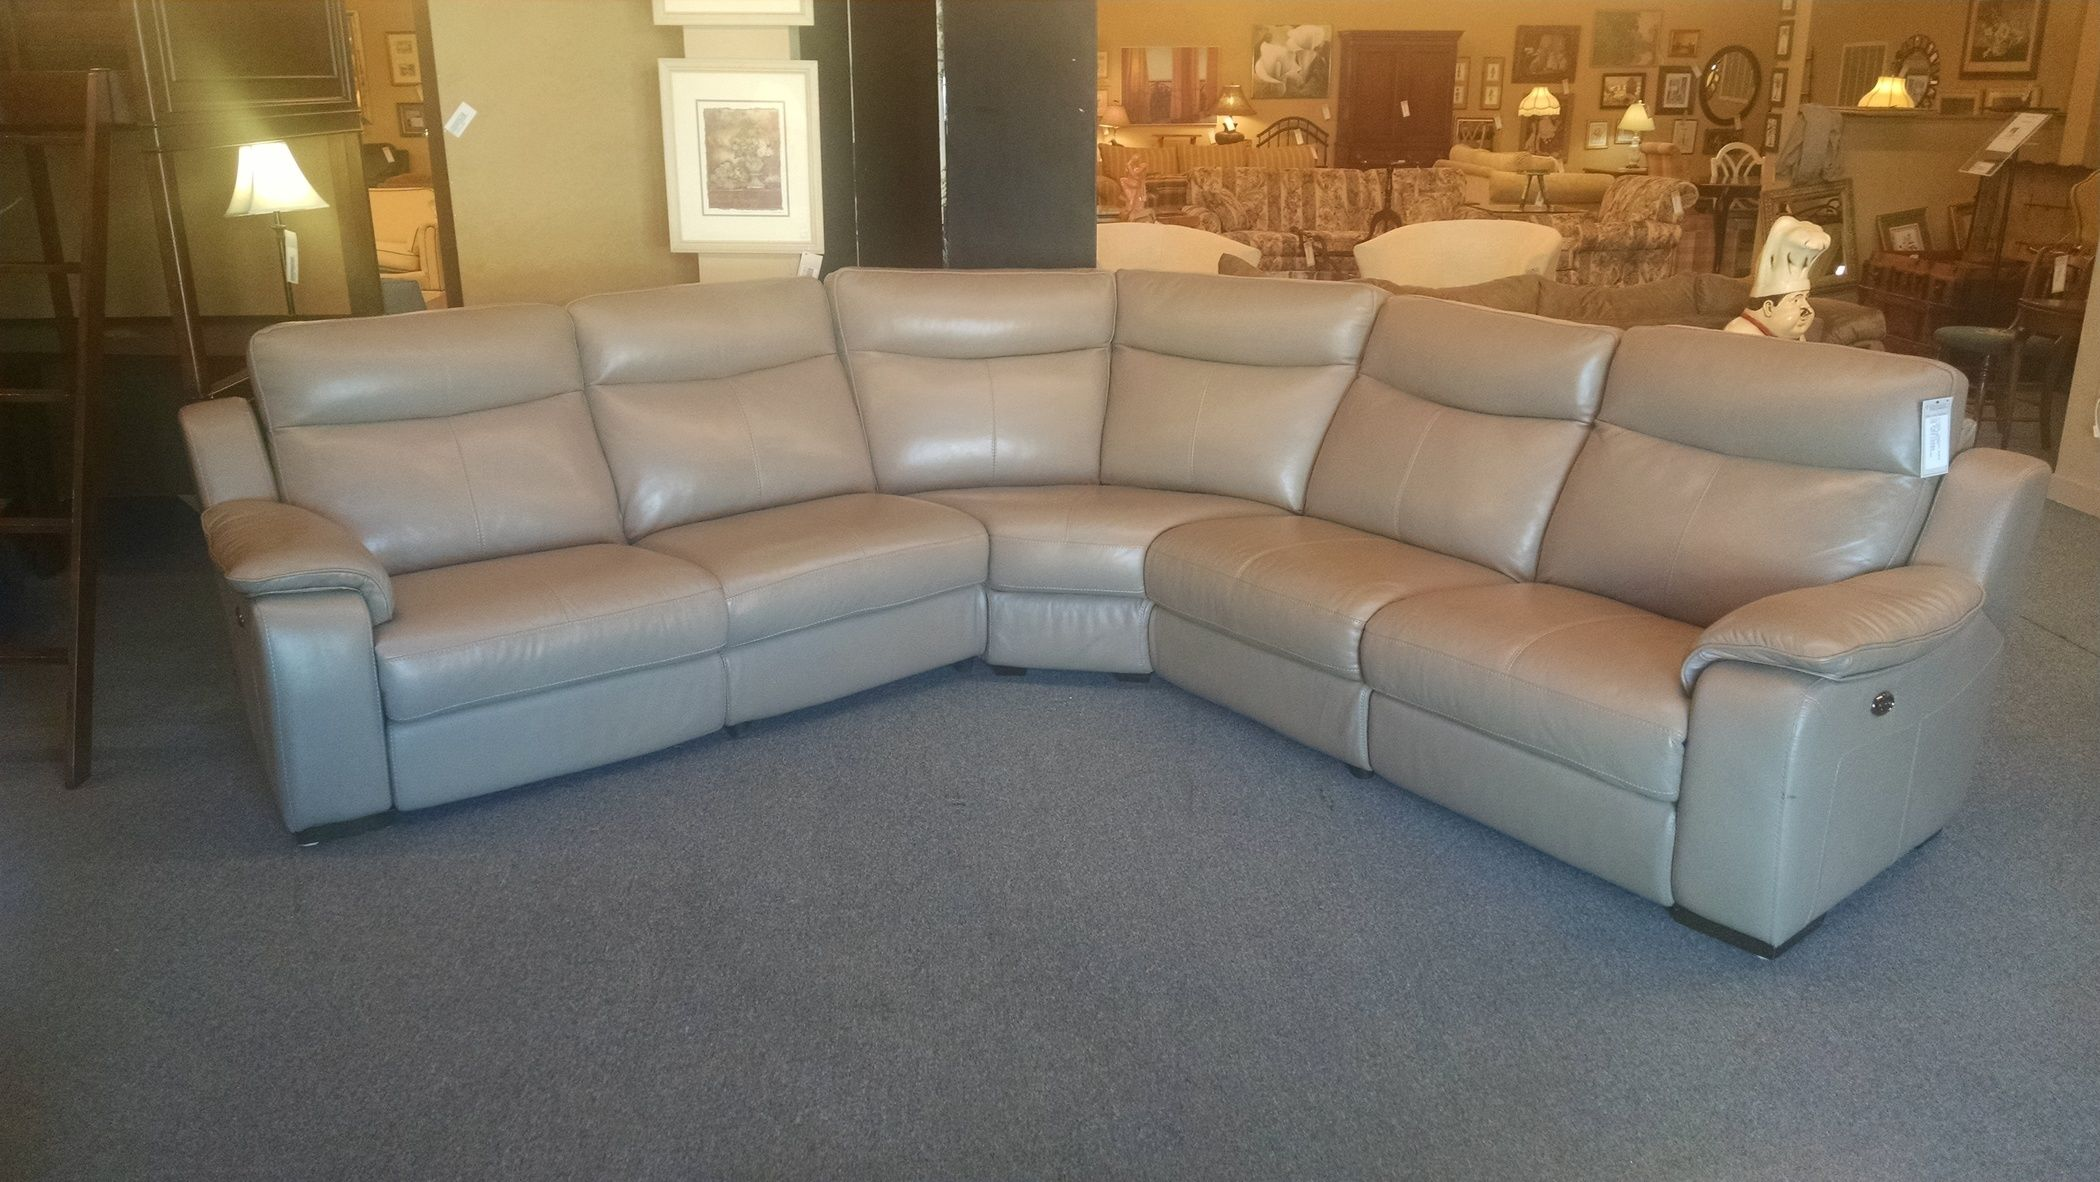 Htl leather sectional delmarva furniture consignment for Htl sectional leather sofa